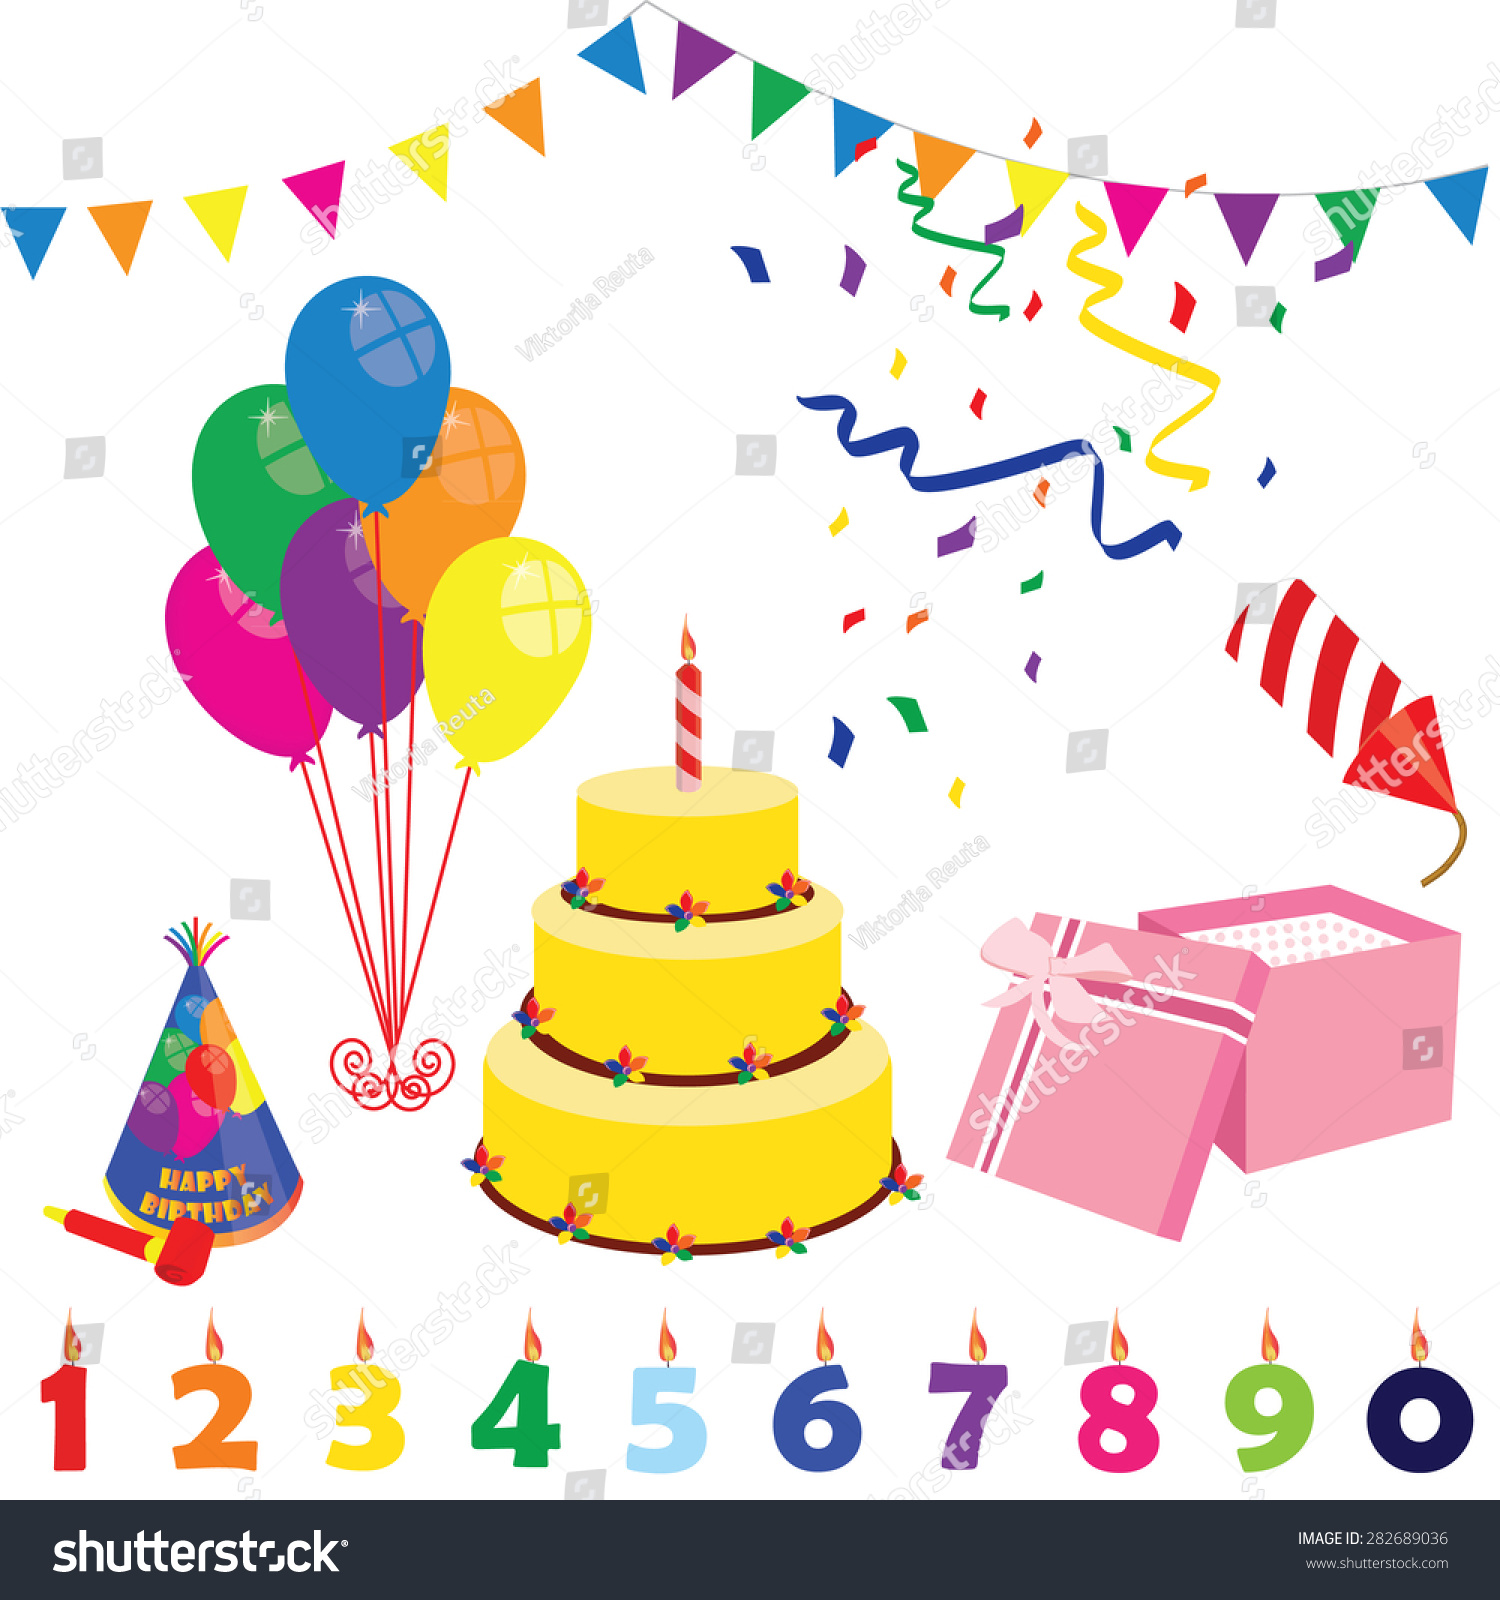 Birthday Party Elements Hat Cake Candles Balloons Gift Box And Petard Surprise Celebration